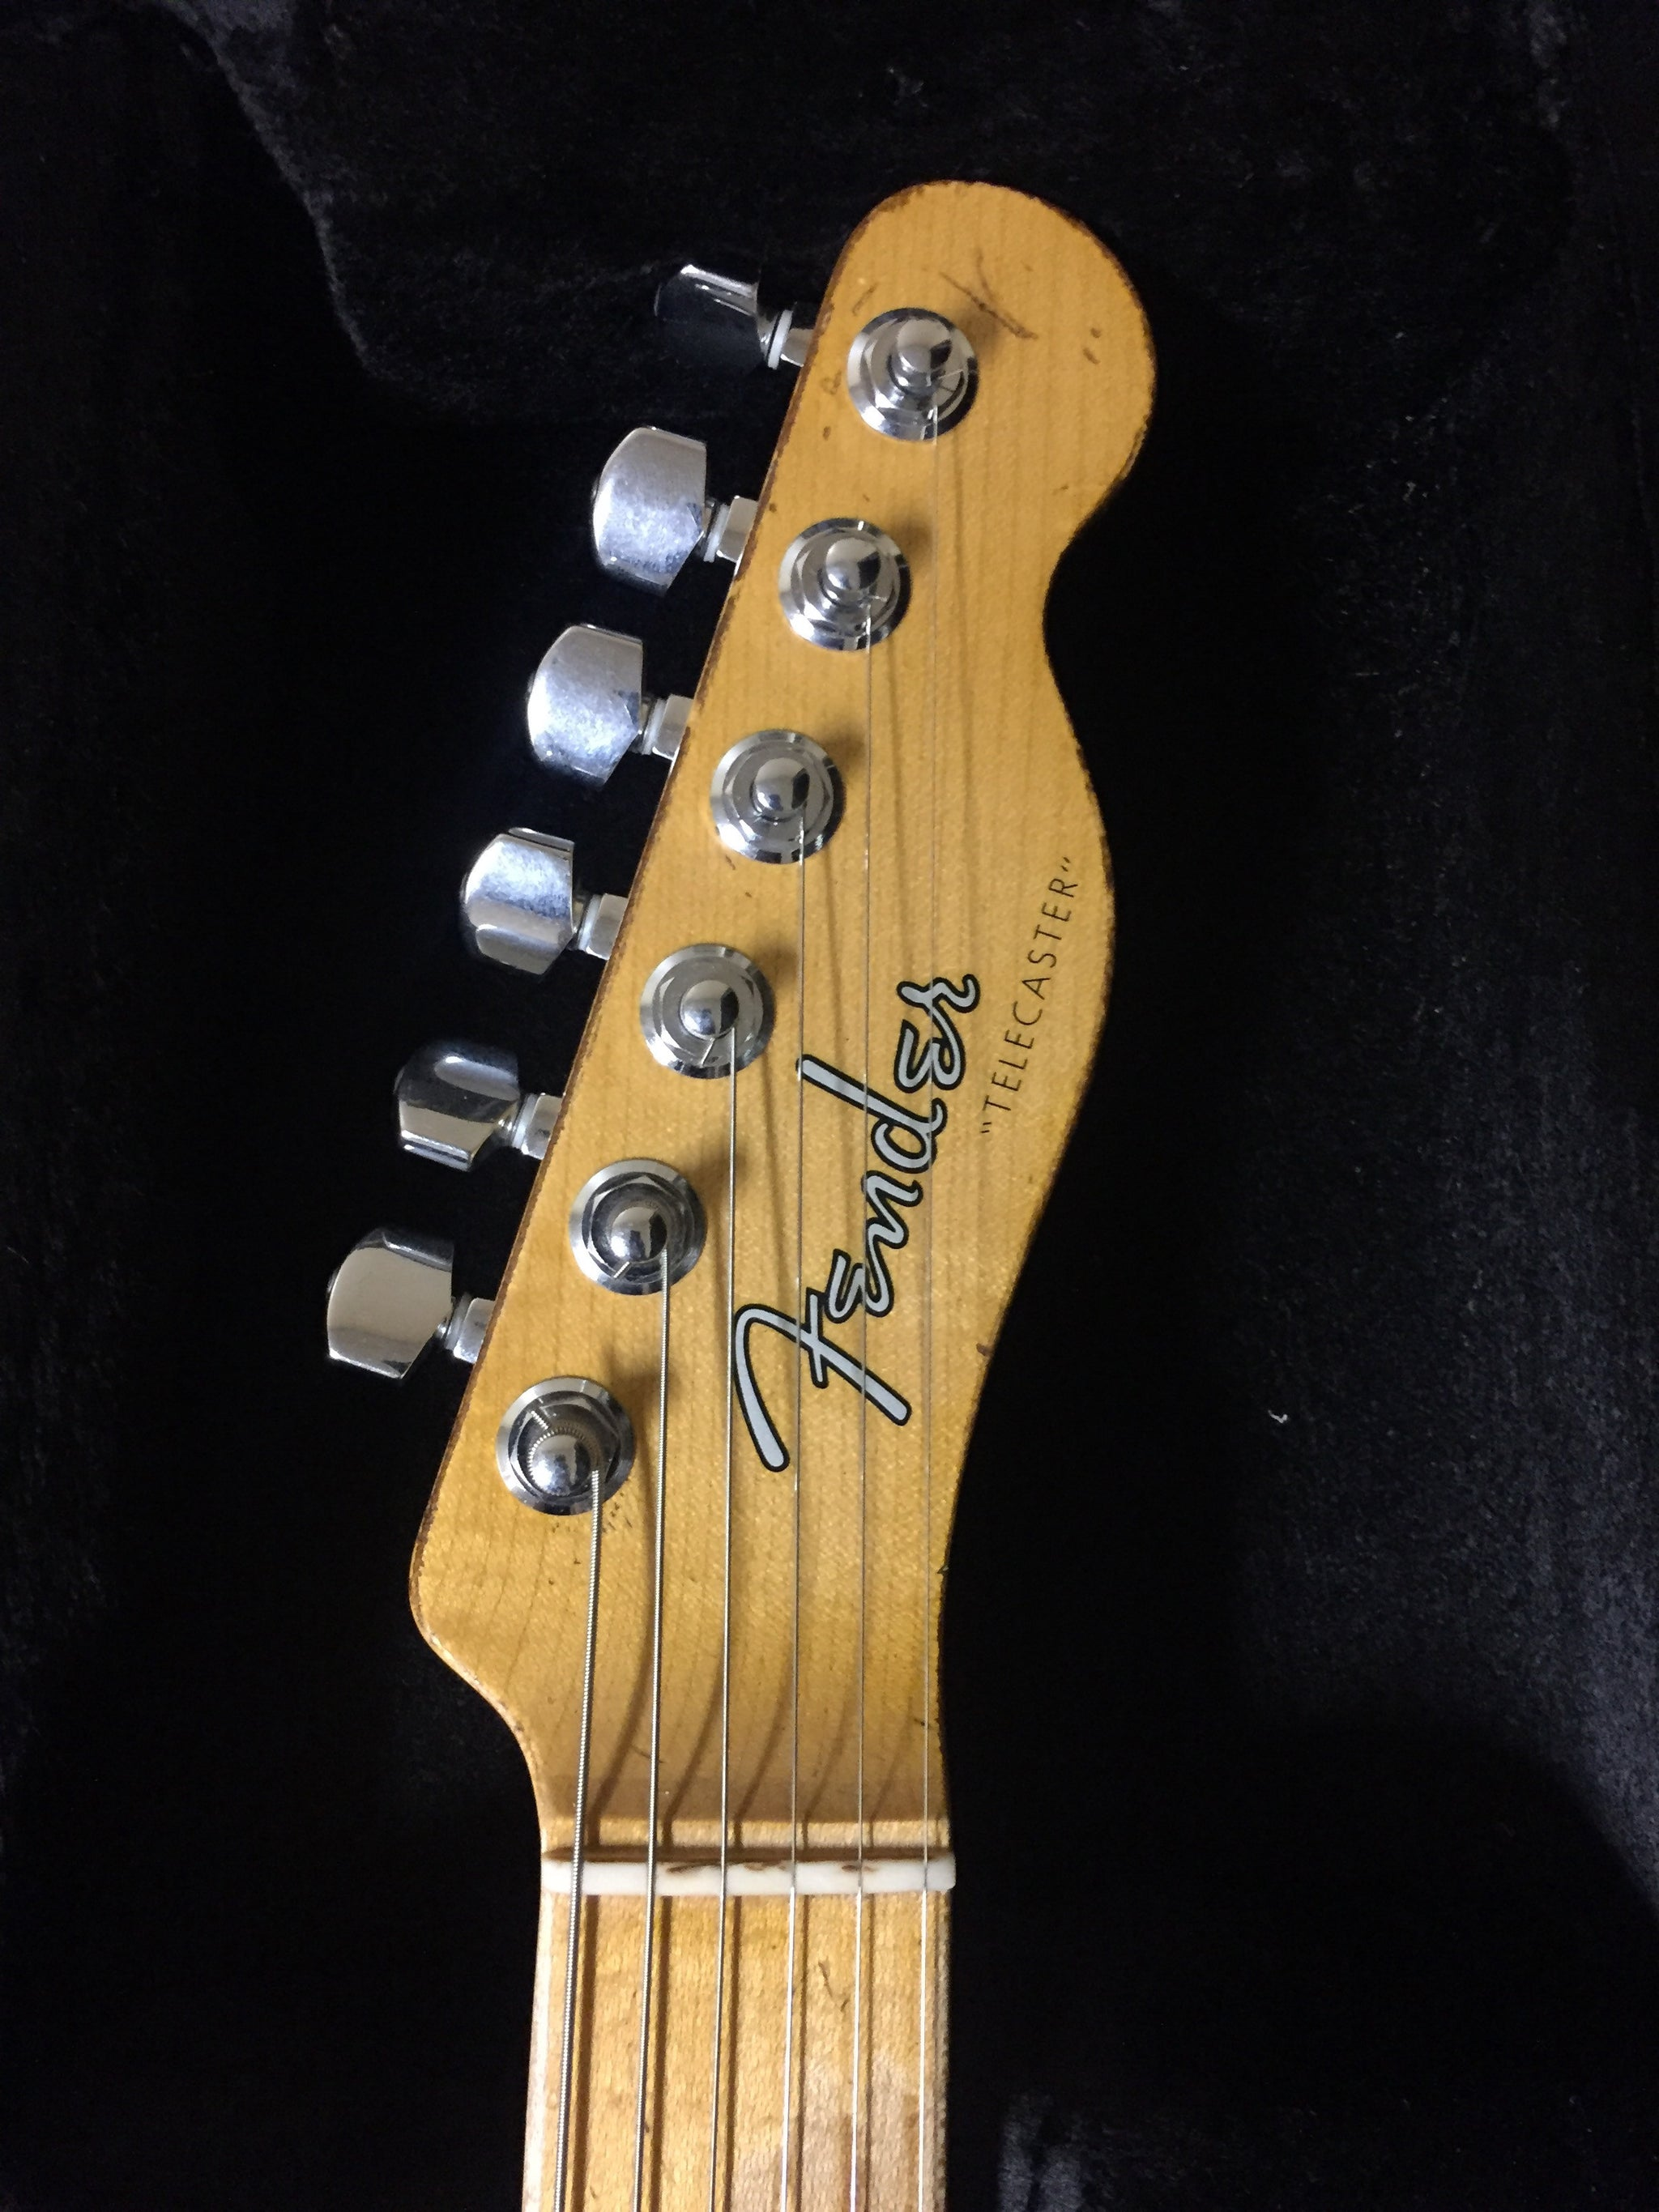 Fender Custom Shop 63 Heavy Relic Telecaster 3 Tone Burst  ****SOLD****